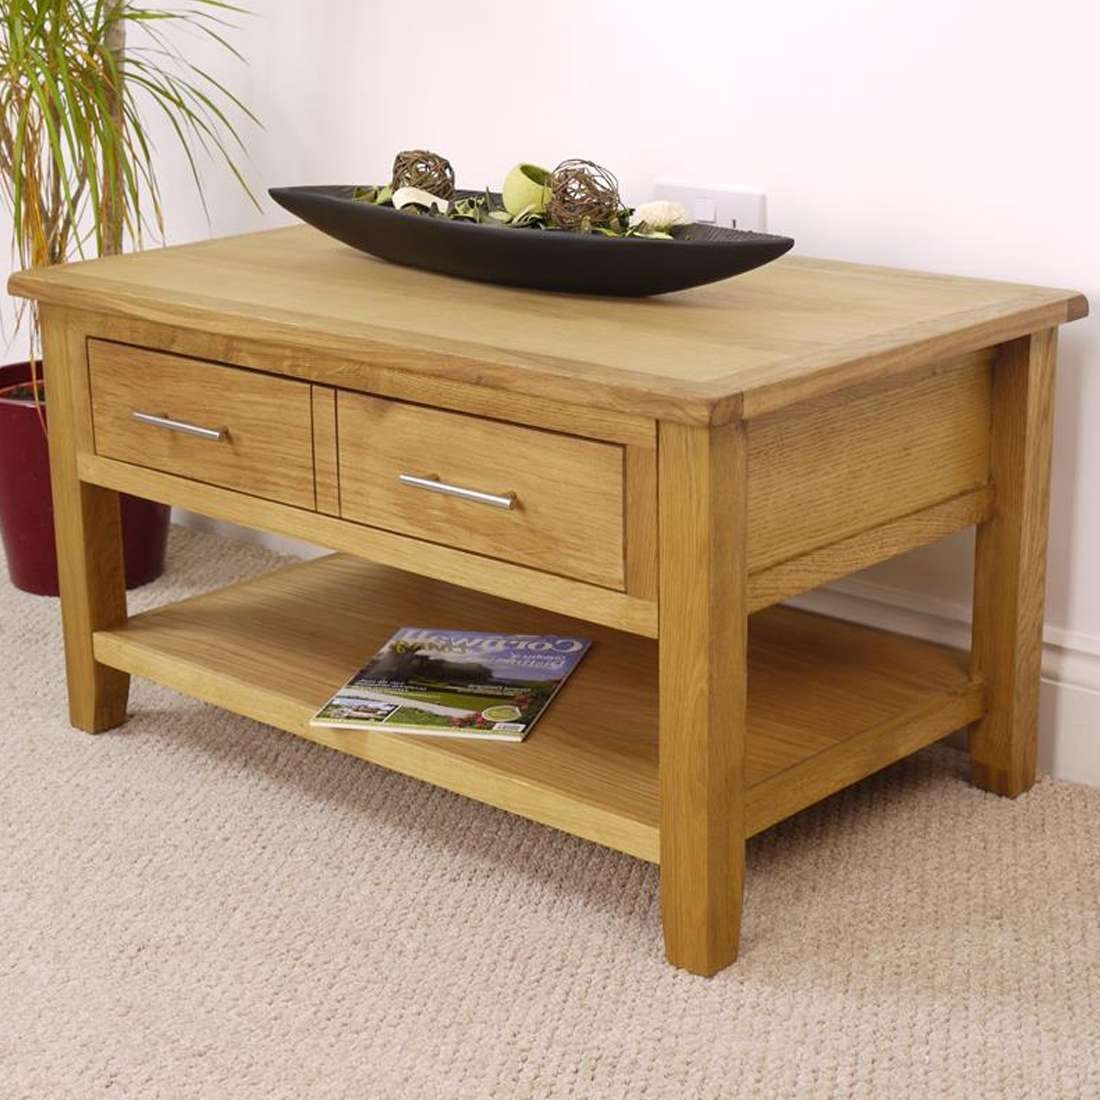 2017 Oak Coffee Table With Drawers Within Nebraska Modern Oak Coffee Table With 1 Large Drawer & Shelf (View 2 of 20)